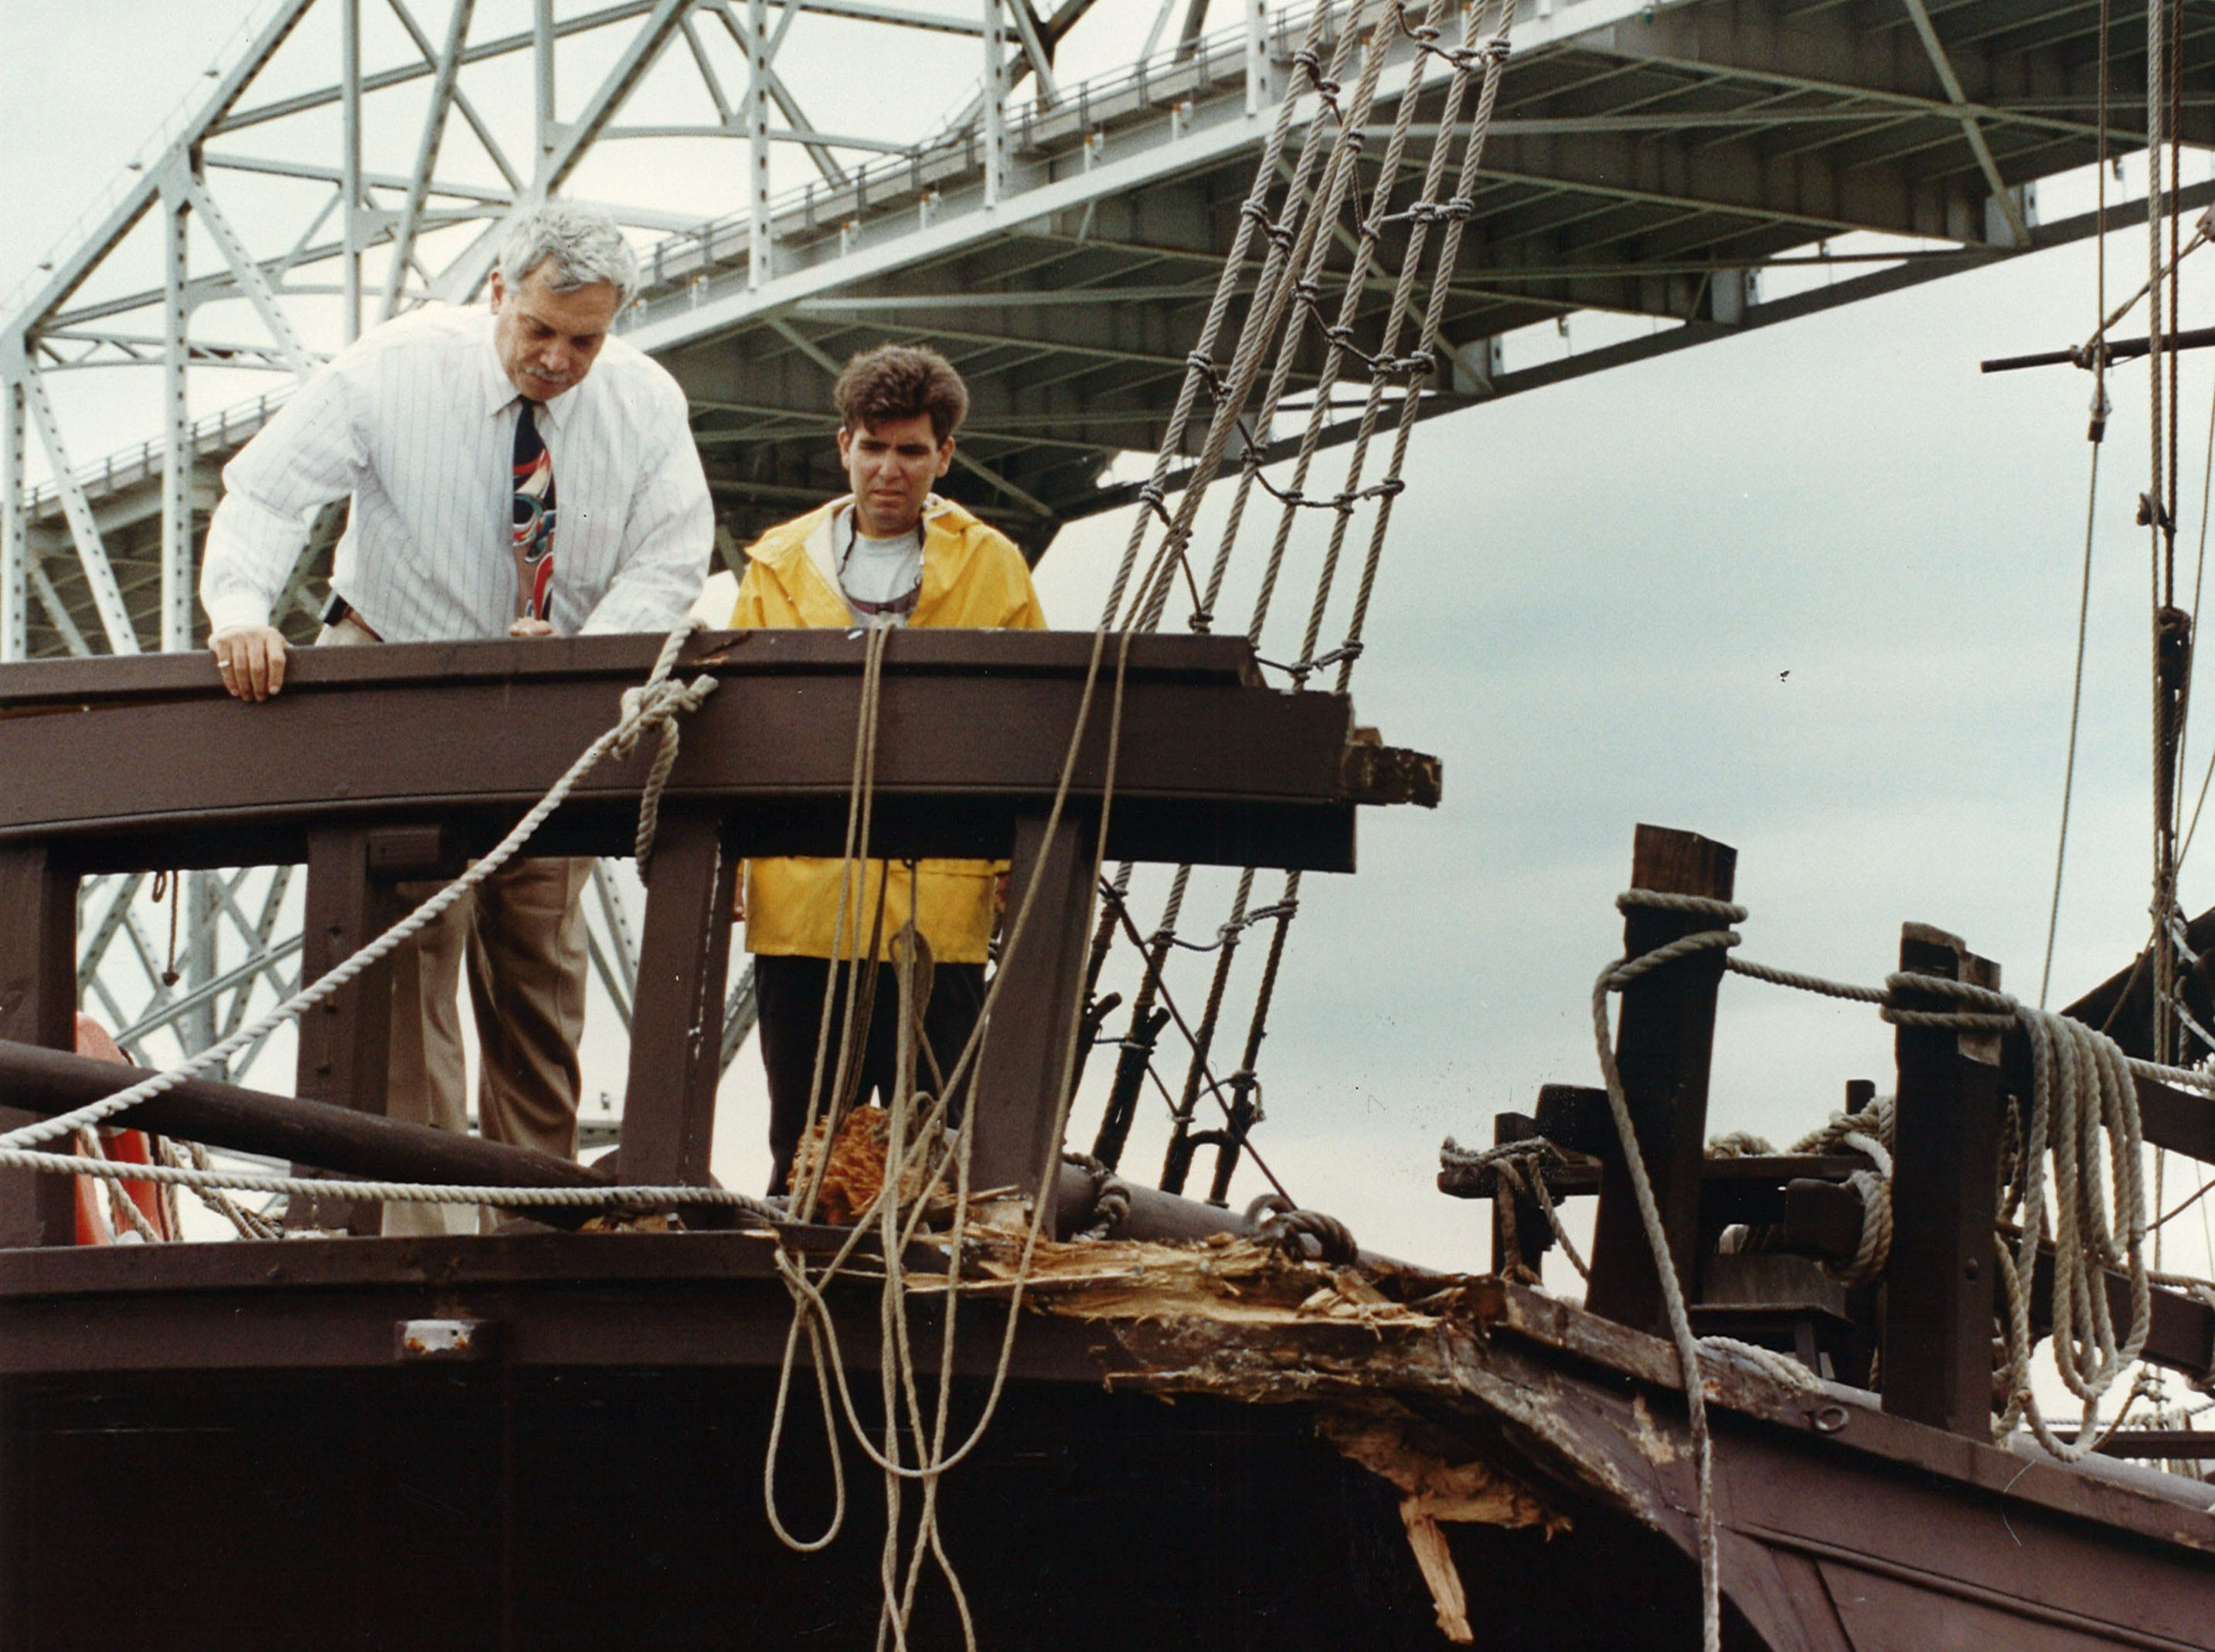 Port of Corpus Christi Authority industrial relations and military liasons officer Tony Alejandro (left) and ship's mate Jose Antonio Barrera (right), stand on the quarterdeck near the Pinta's stern on April 12, 1994. The Columbus ship replica was damaged when a port vessel ran into the ship, causing the Pinta to hit the Santa Maria.